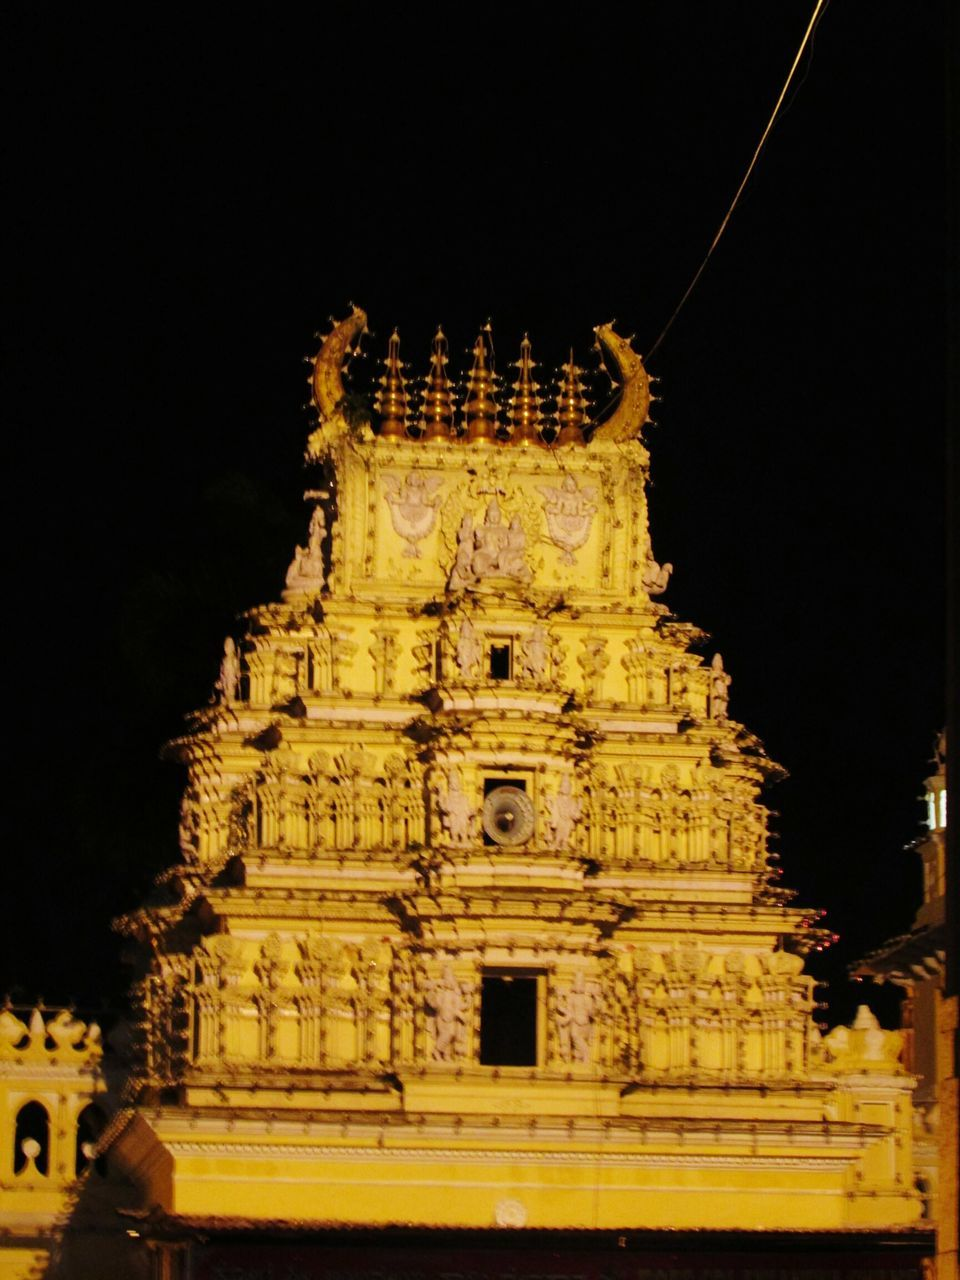 religion, spirituality, place of worship, statue, architecture, building exterior, sculpture, built structure, gold colored, history, travel destinations, low angle view, no people, illuminated, outdoors, night, sky